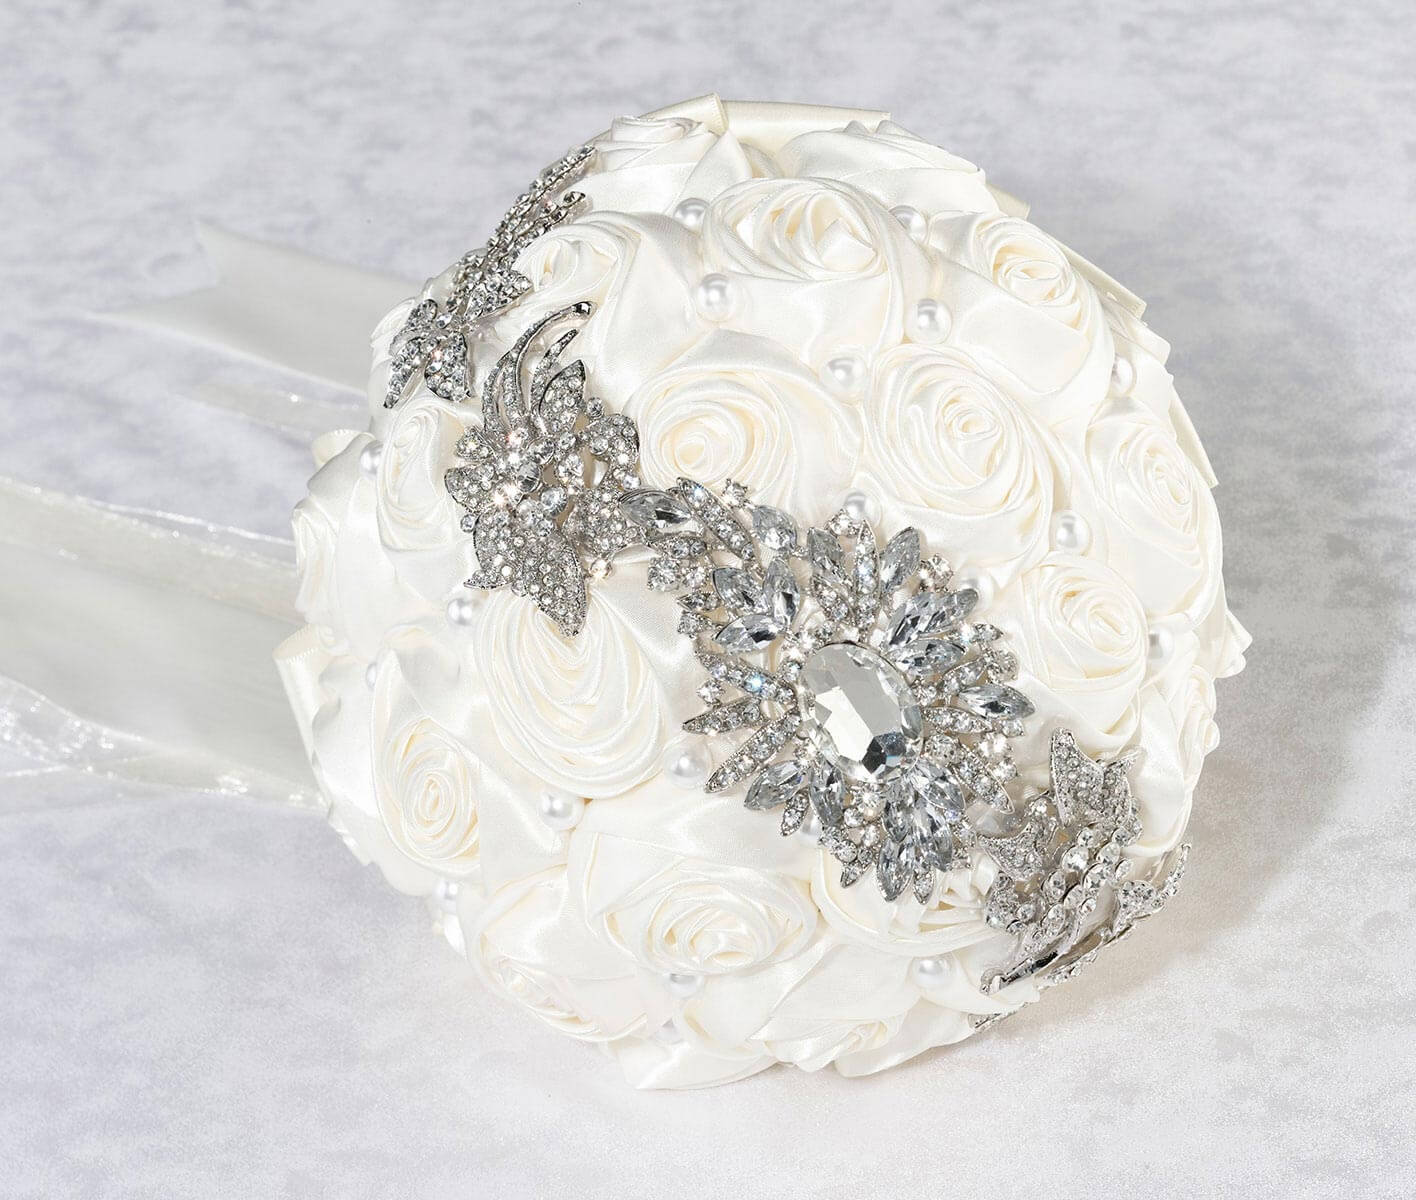 Crystal brooch bouquet with off white satin roses izmirmasajfo